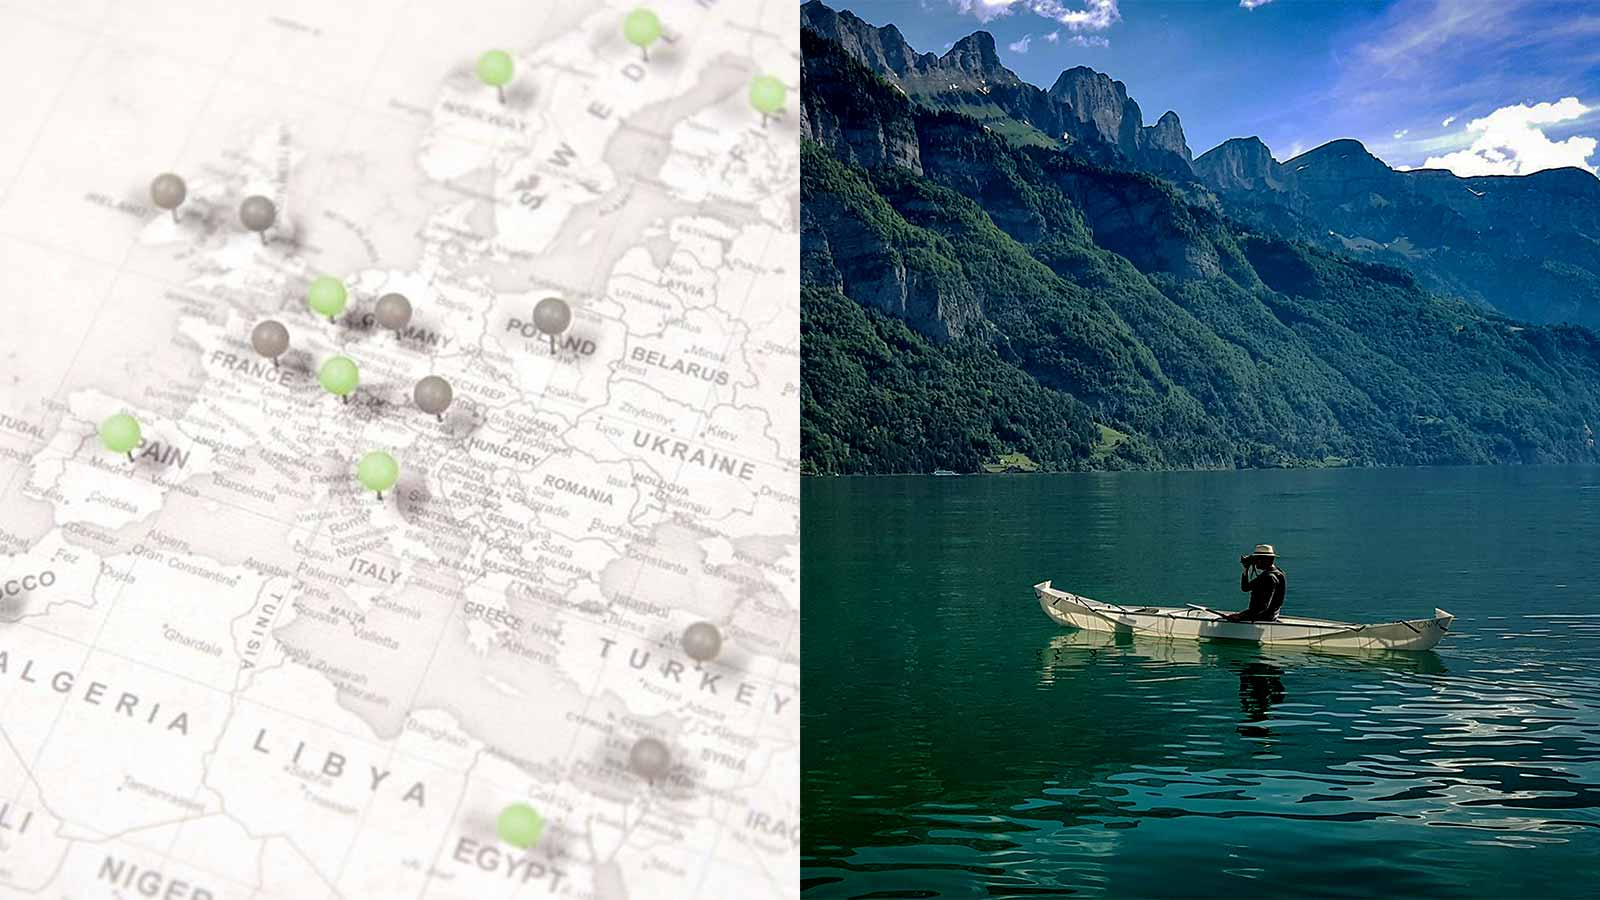 10 unique places in Europe that yearn to be discovered by canoeists